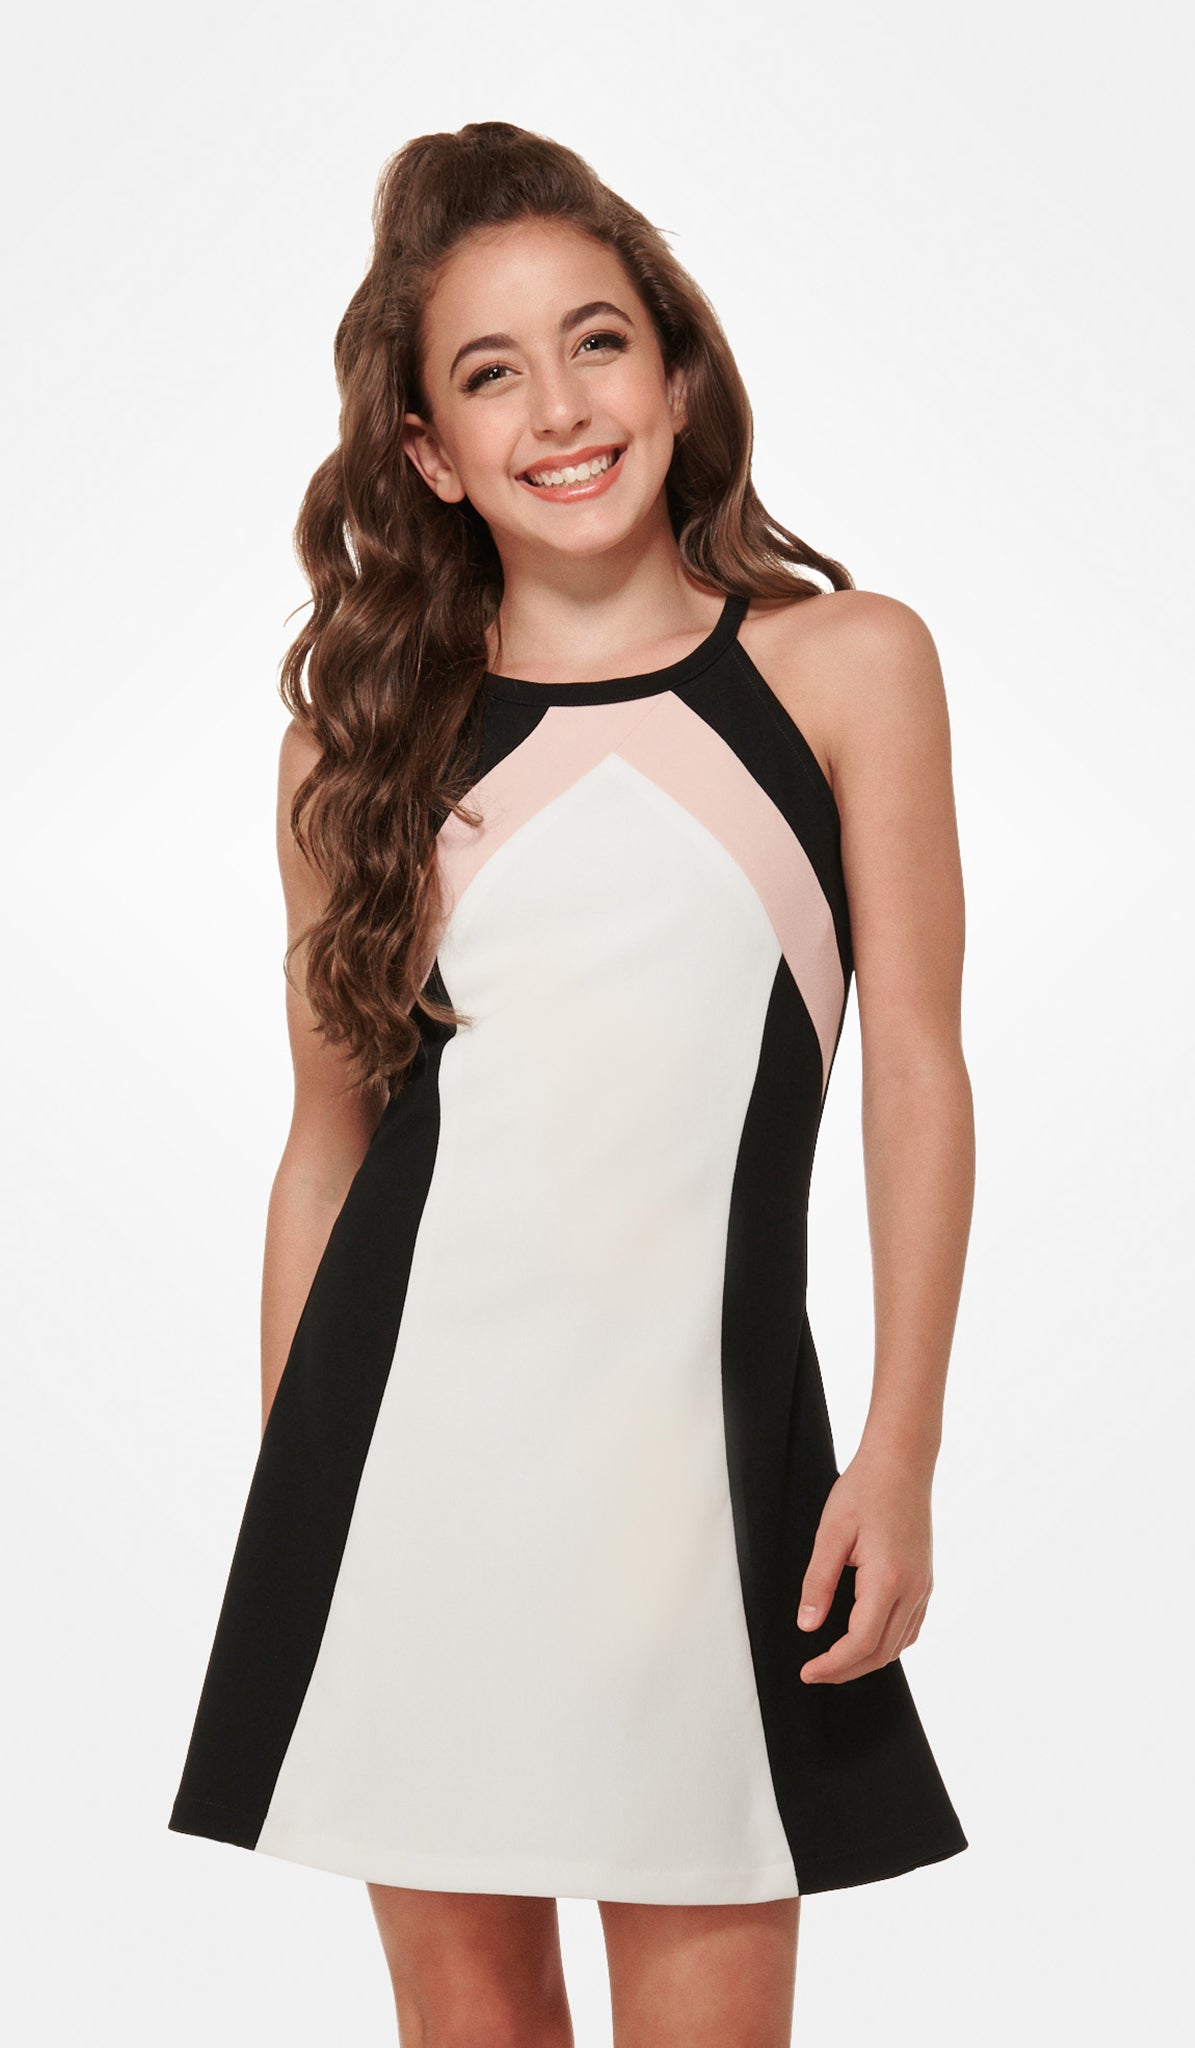 THE HOPE DRESS - Sallymiller.com - [variant title] - | Event & Party Dresses for Tween Girls & Juniors | Weddings Dresses, Bat Mitzvah Dresses, Sweet Sixteen Dresses, Graduation Dresses, Birthday Party Dresses, Bar Mitzvah Dresses, Cotillion Dresses